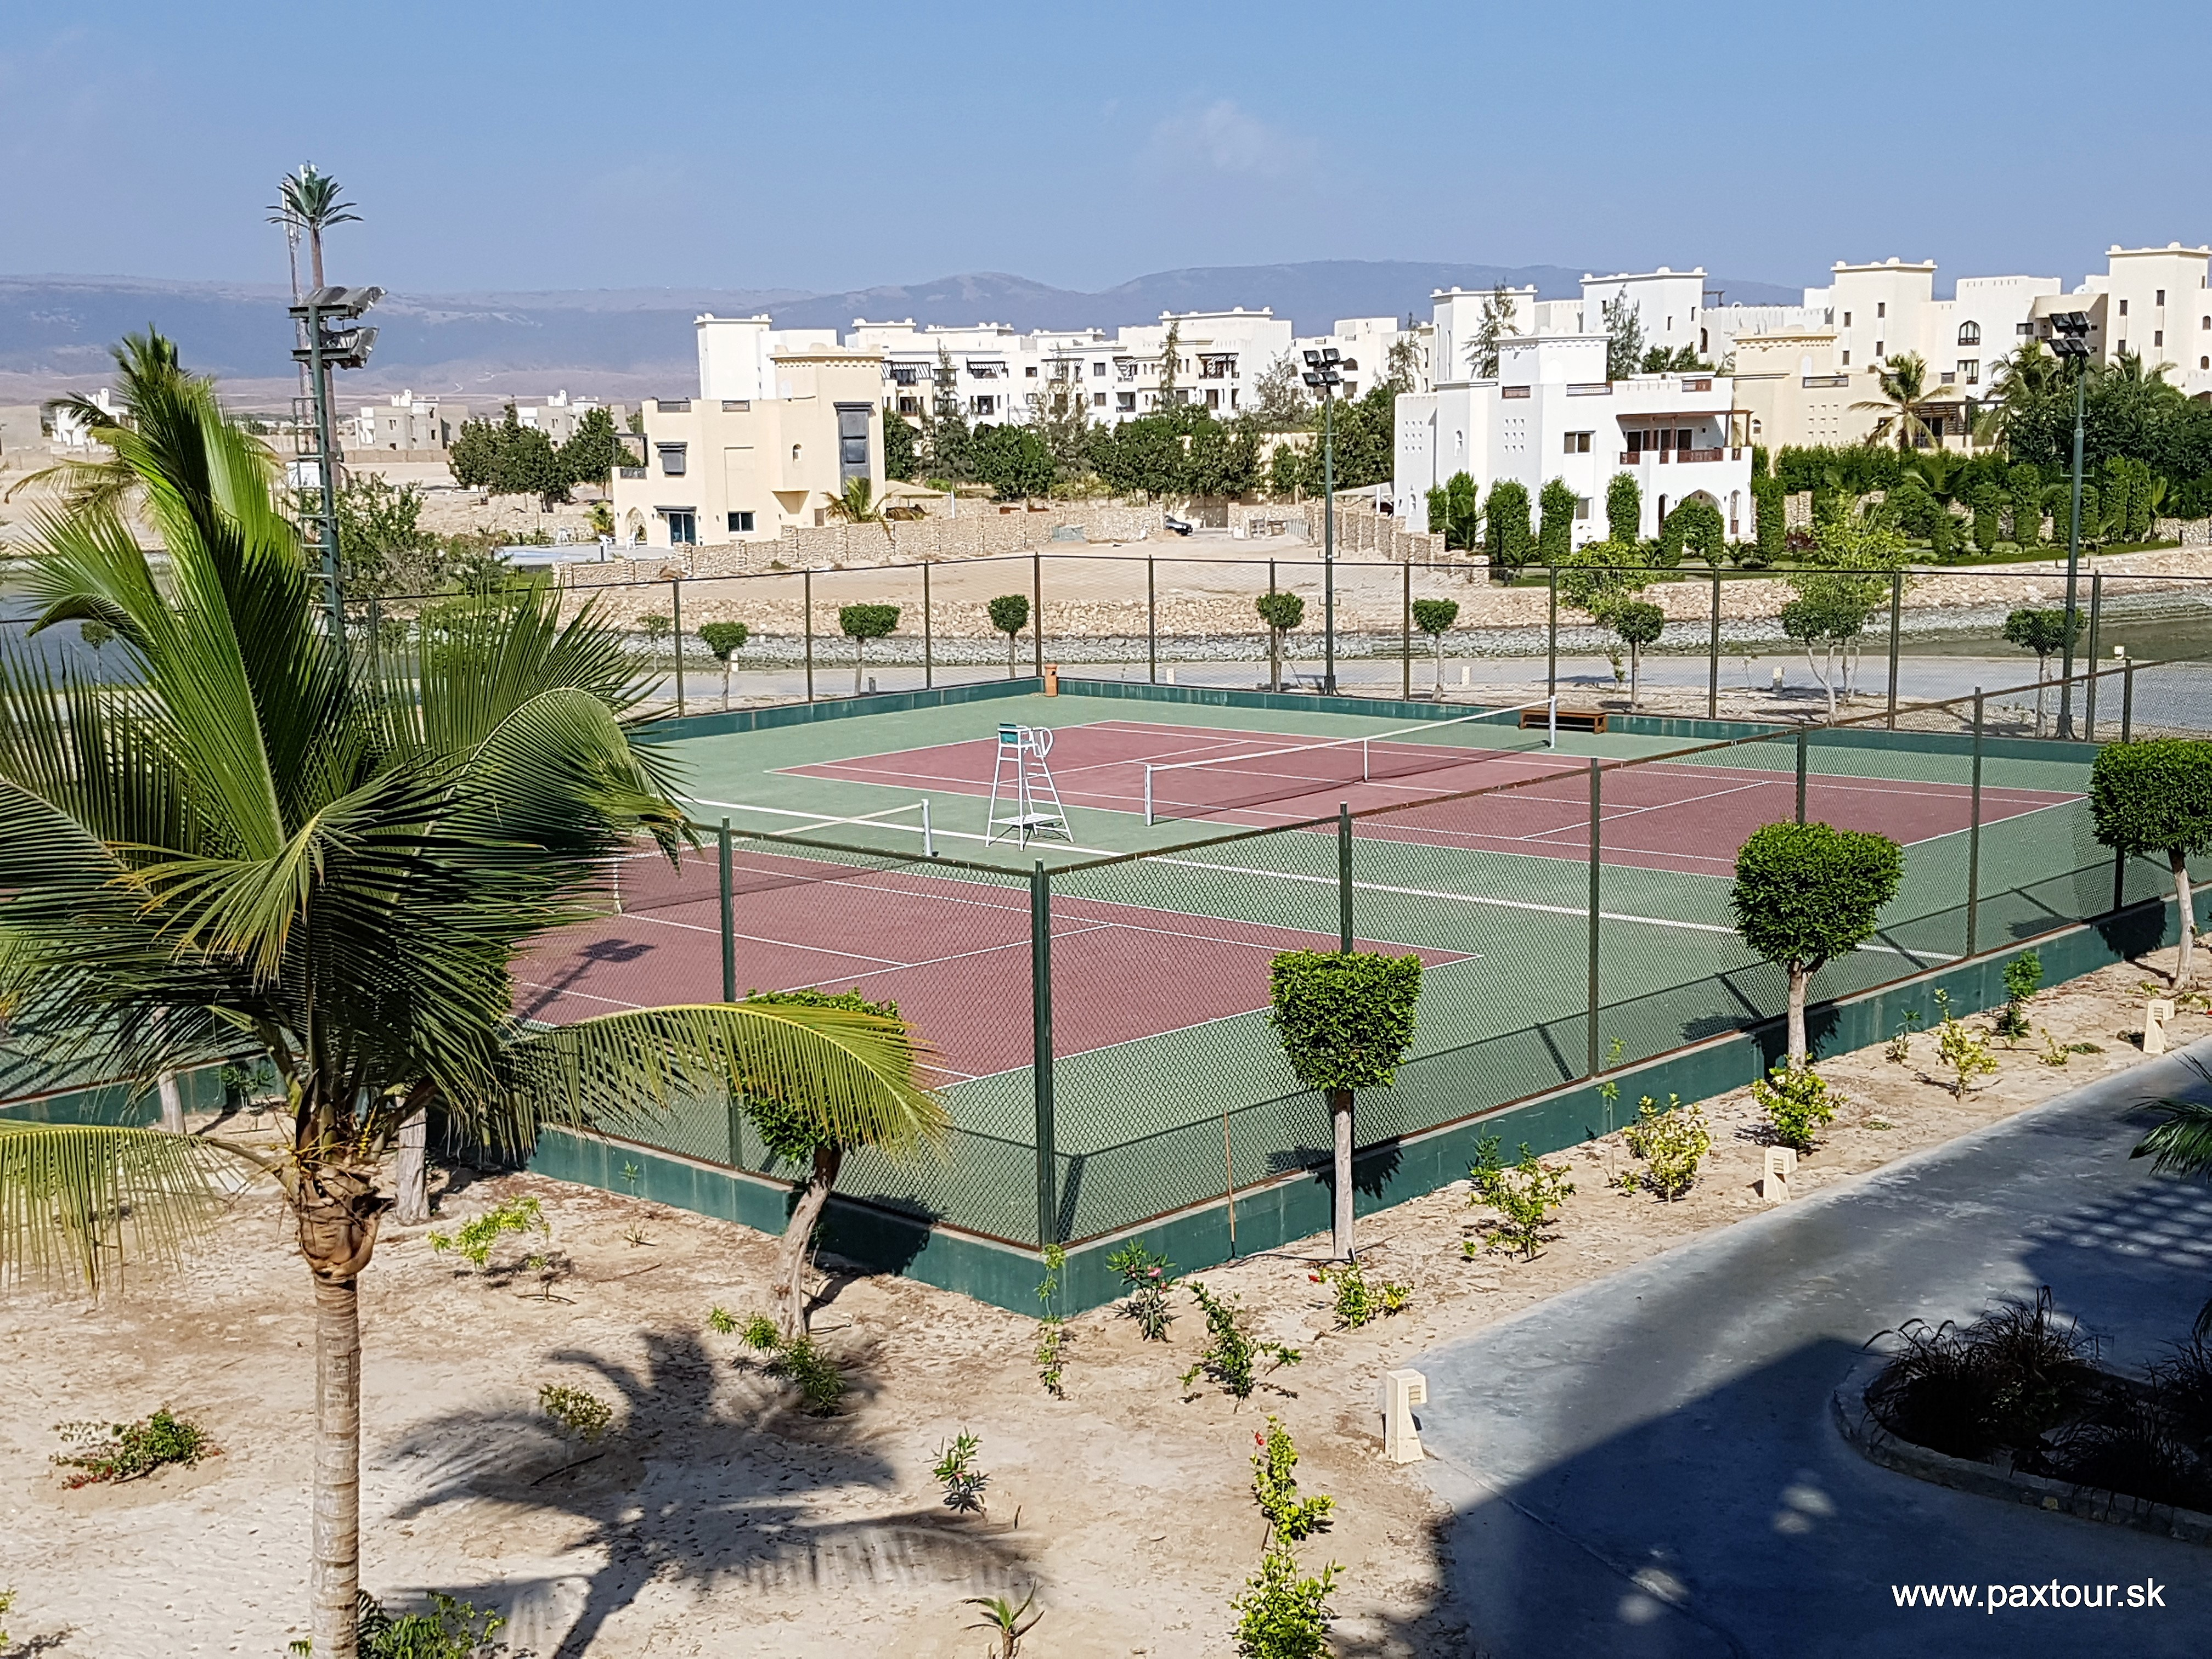 http://www.travelsys.sk/public/users/paxtour/images/fotogaleria_hotel/l_oman012.jpg